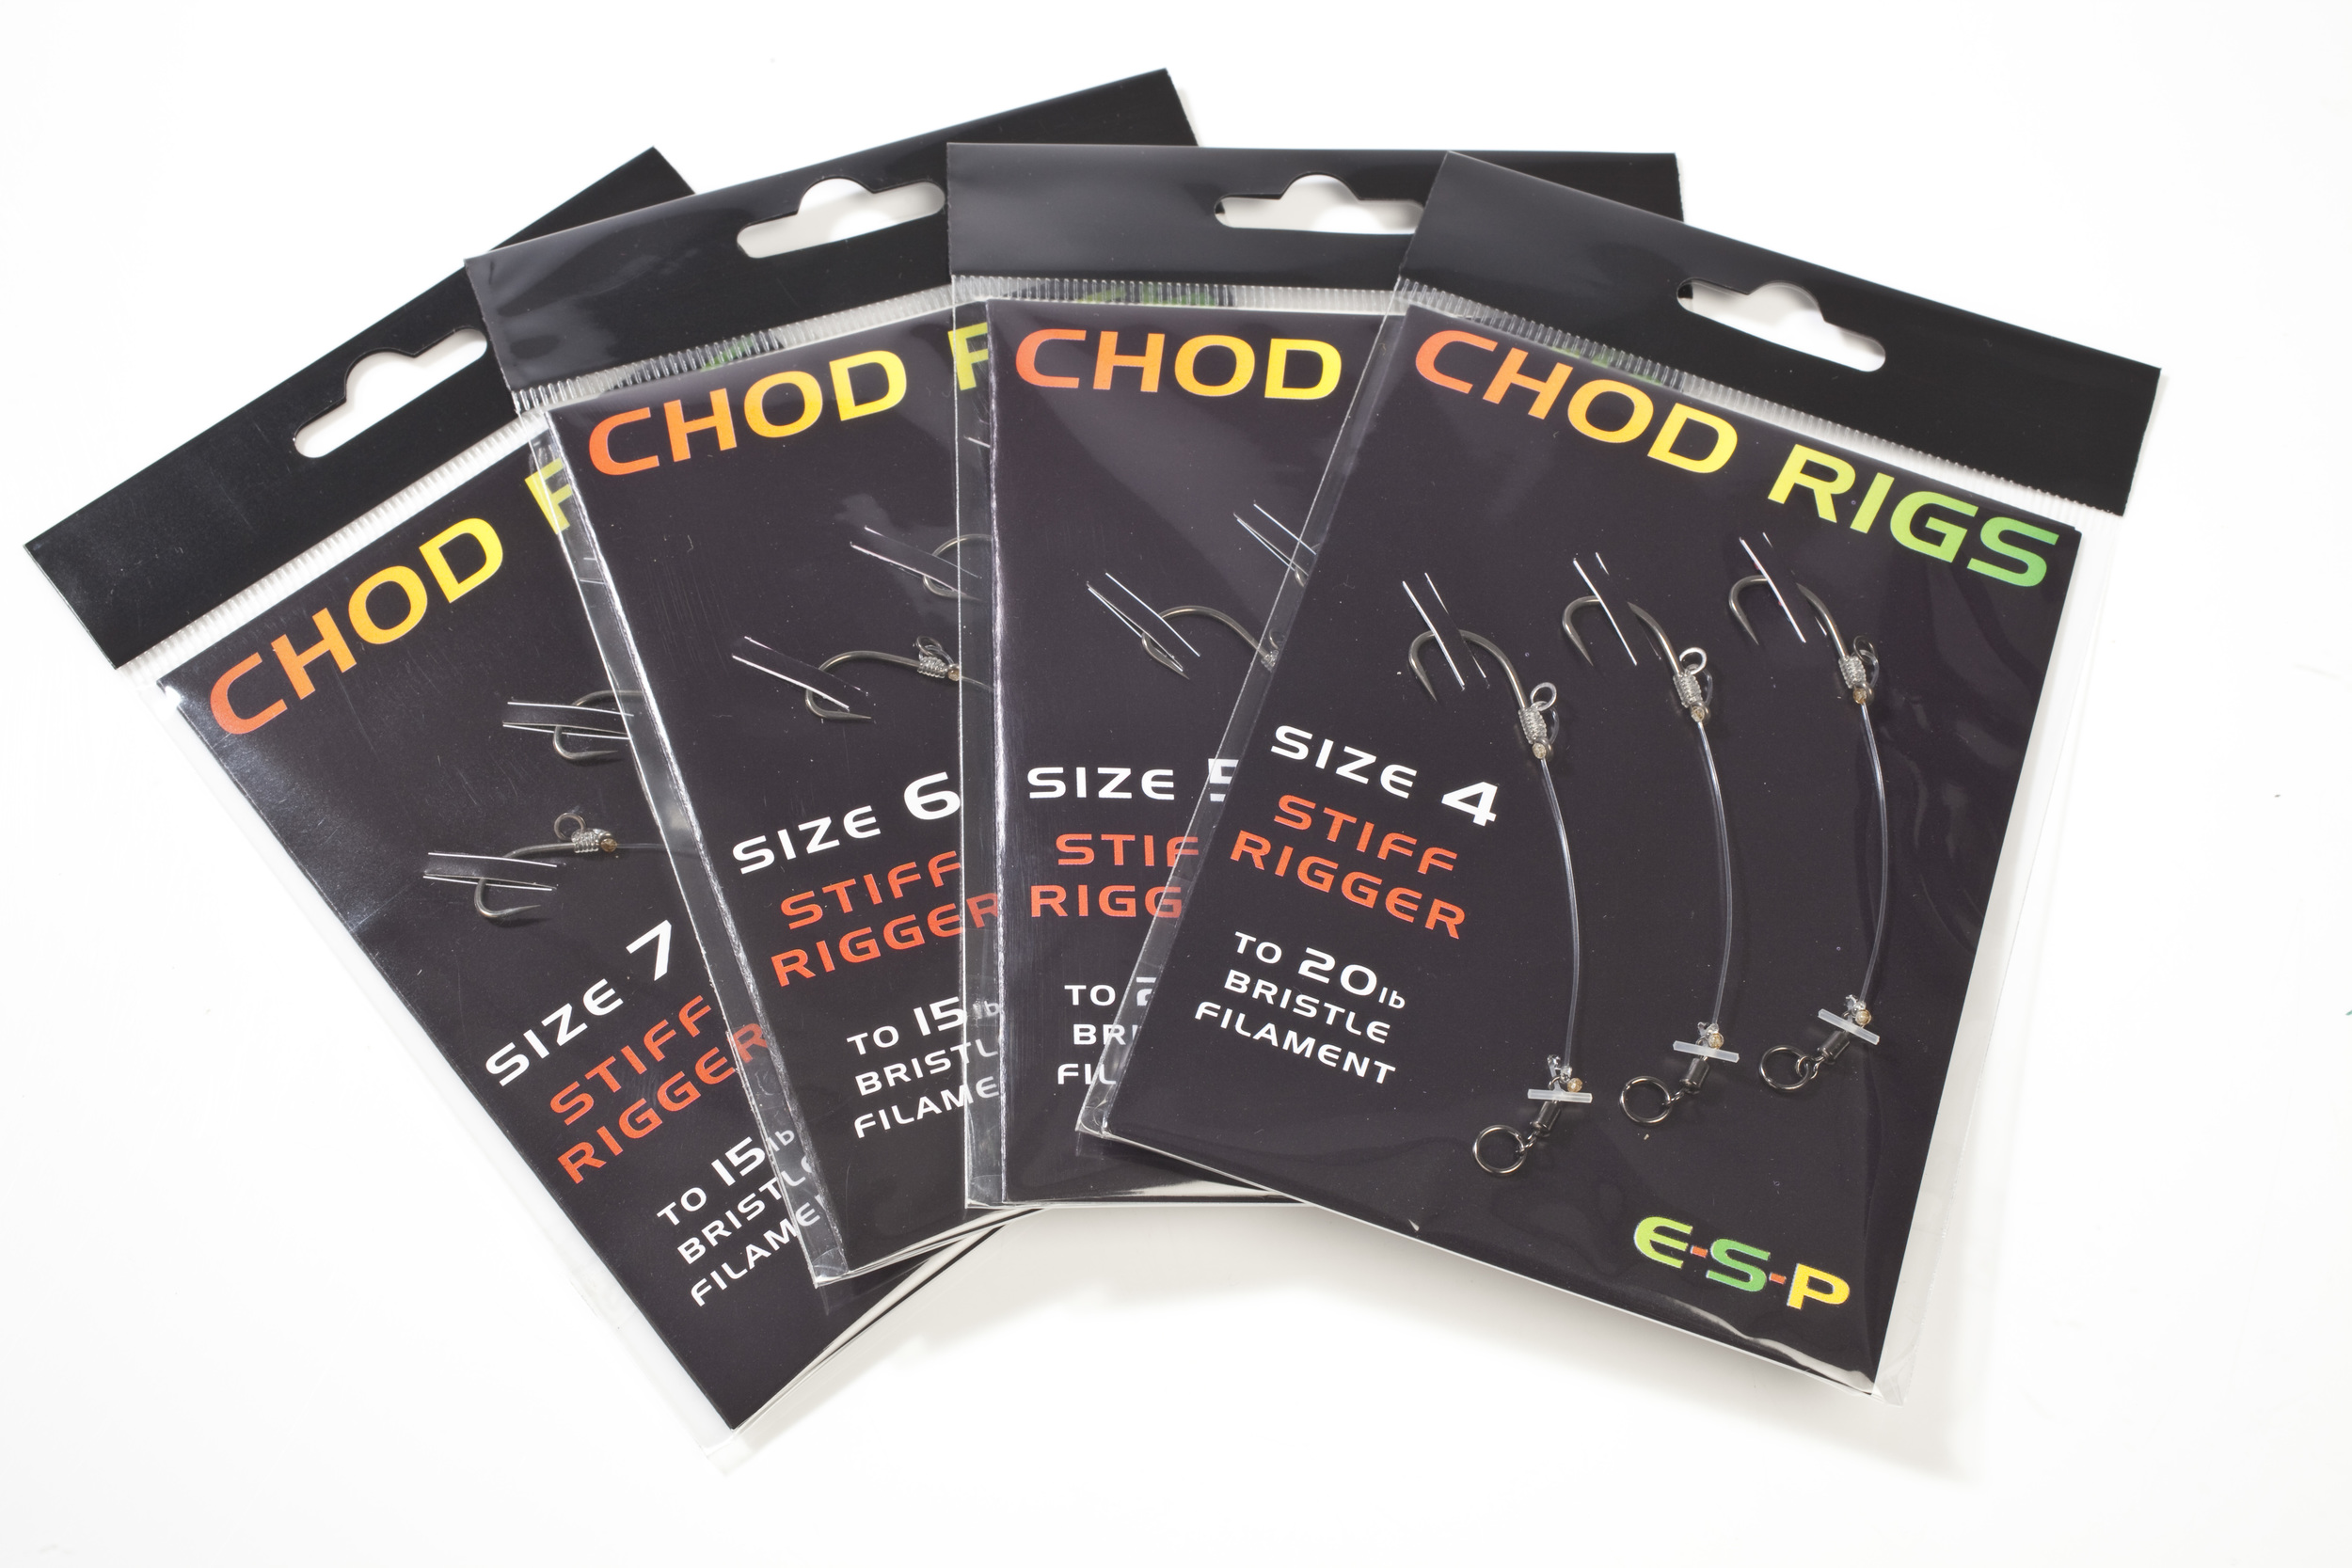 ESP release range of ready-tied chod rigs for carp fishing